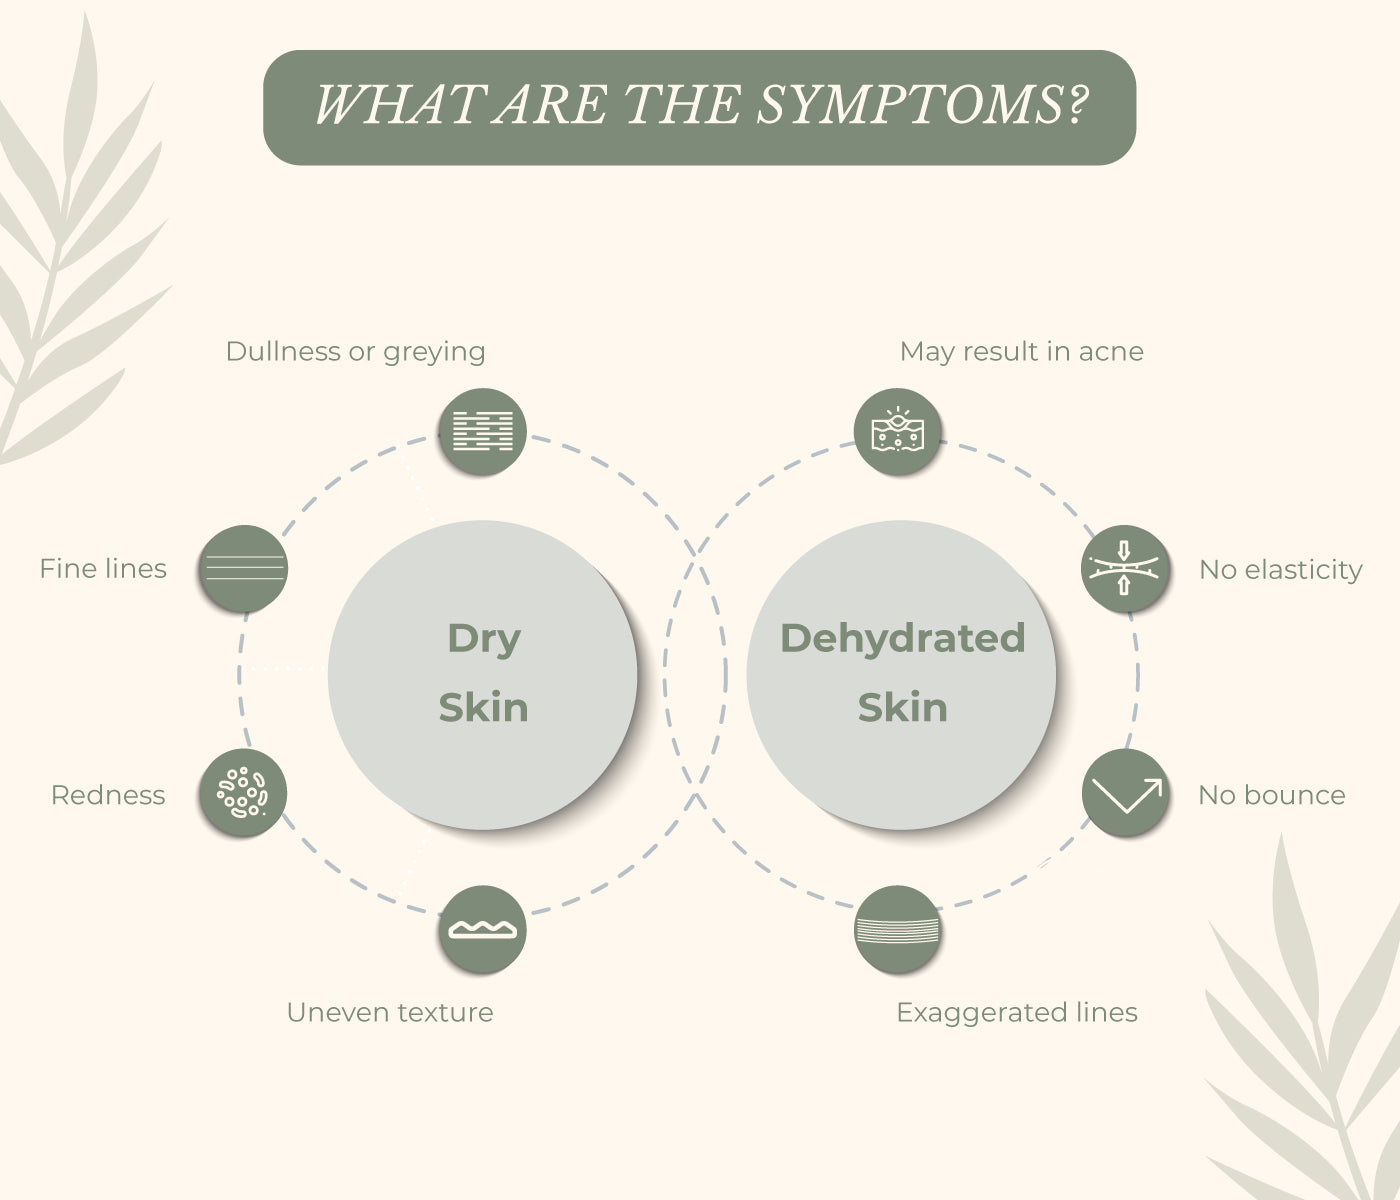 This is an image of symptoms of dry and dehydrated skin on www.sublimelife.in.